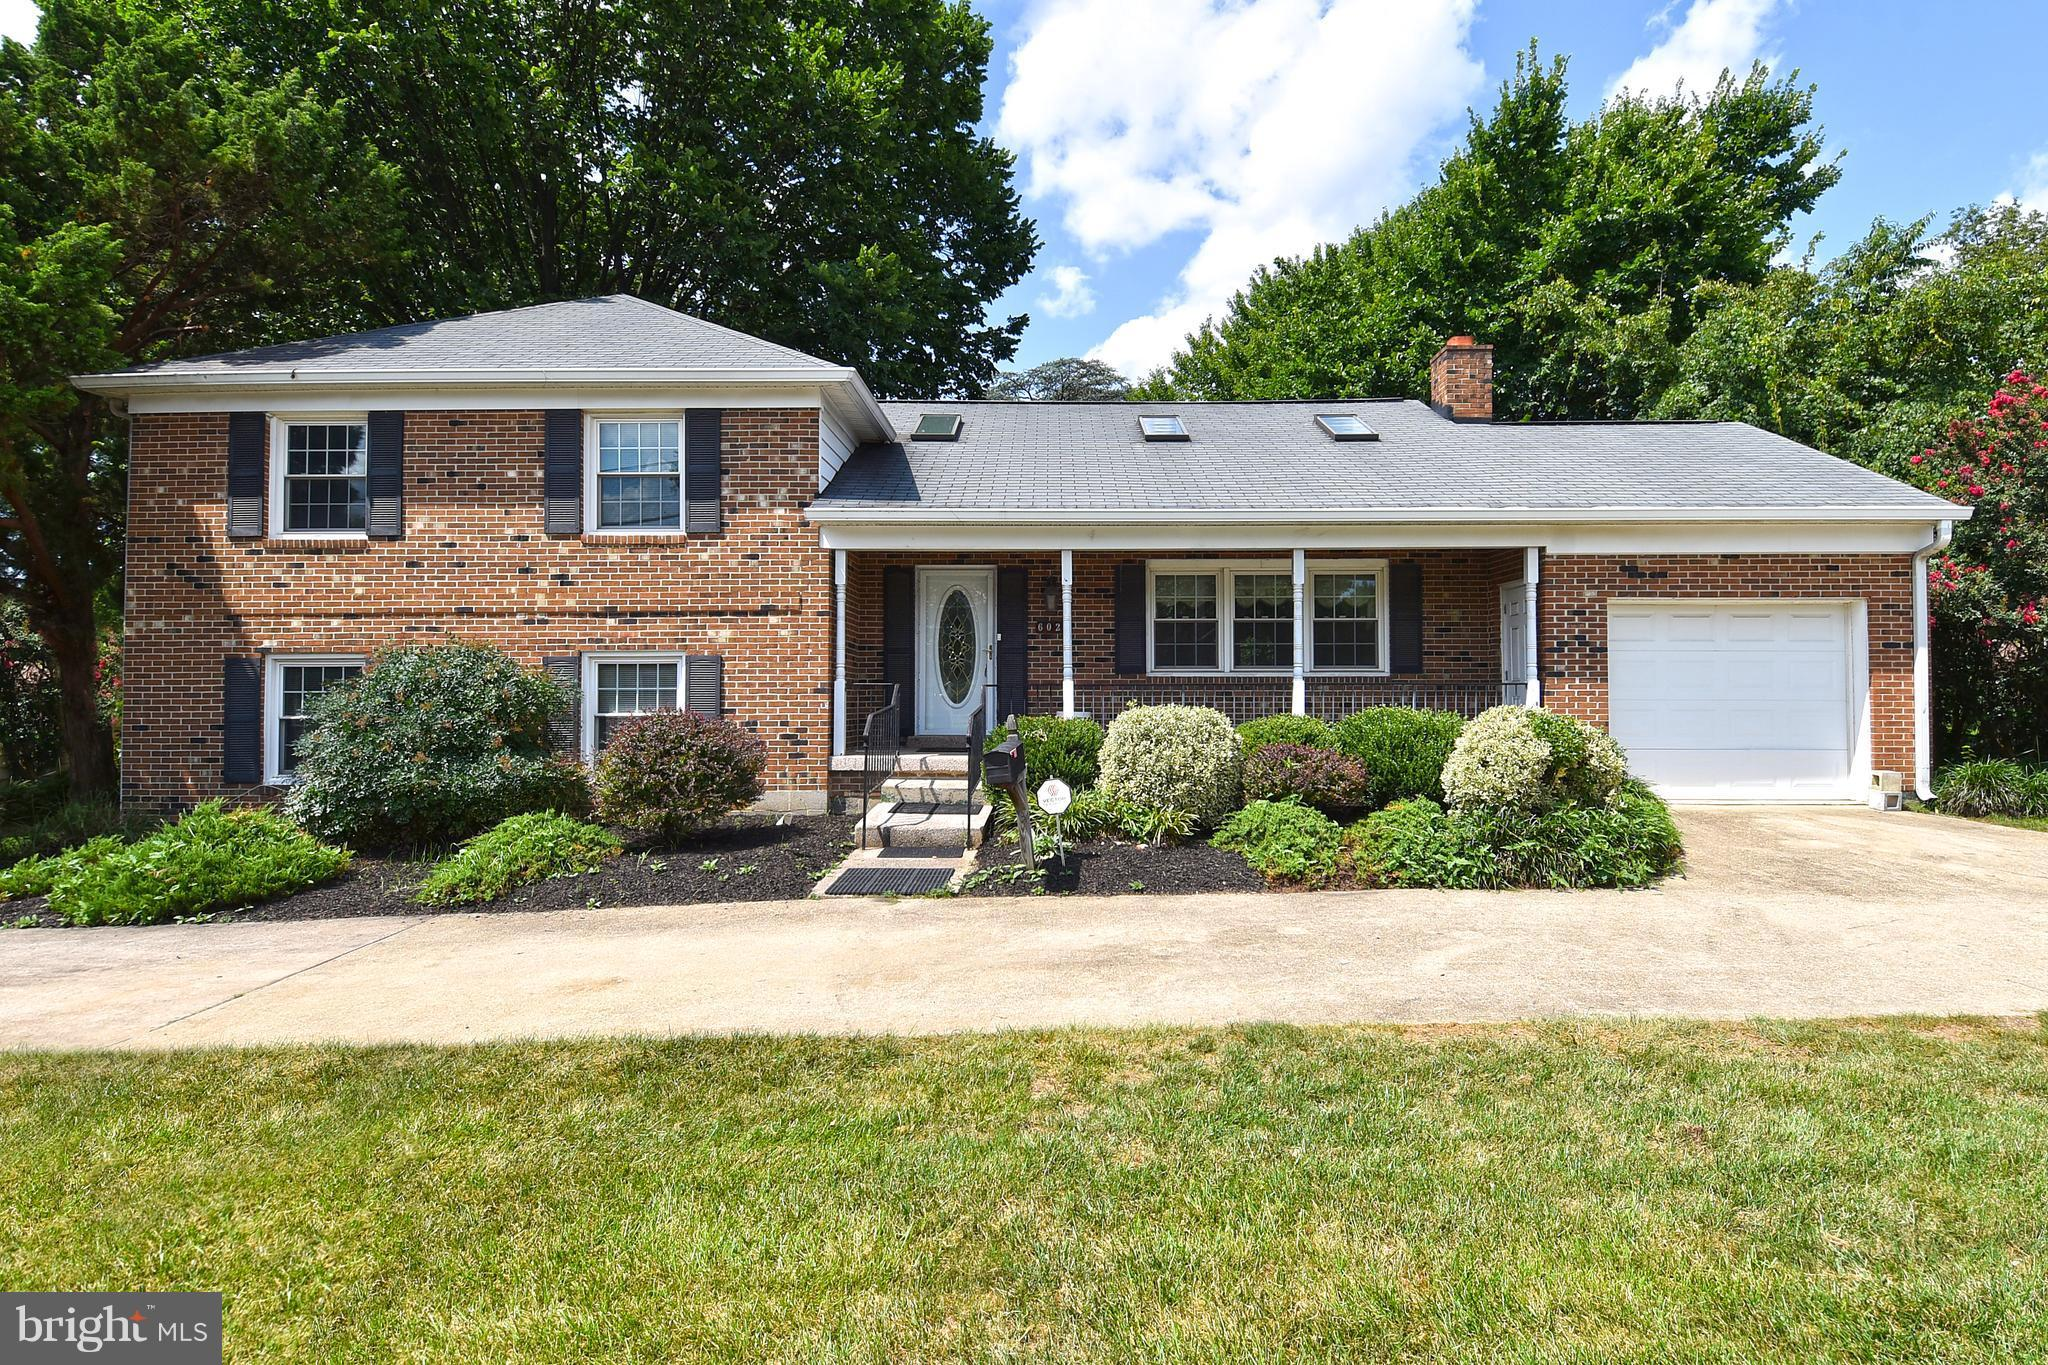 PRICE REDUCED ON THIS Large, Beautiful, 4 Lvl. w/5BR & 3BA. Beautiful Hardwood Floors, Freshly painted,  New Wall to Wall Carpet. Close To Two Metro Stops; Circular Drive & 1 Car Gar. 2 FP's; Large Eat-In Kitchen w/Extra Cabinets; 2 Extra Storage Rooms; Large, Private Back Yard; Newer Thermal Windows; Alarm System; Close To Schools & Major Shopping Center.  Great Commute To All Areas. Ready To Move Into & Start School!